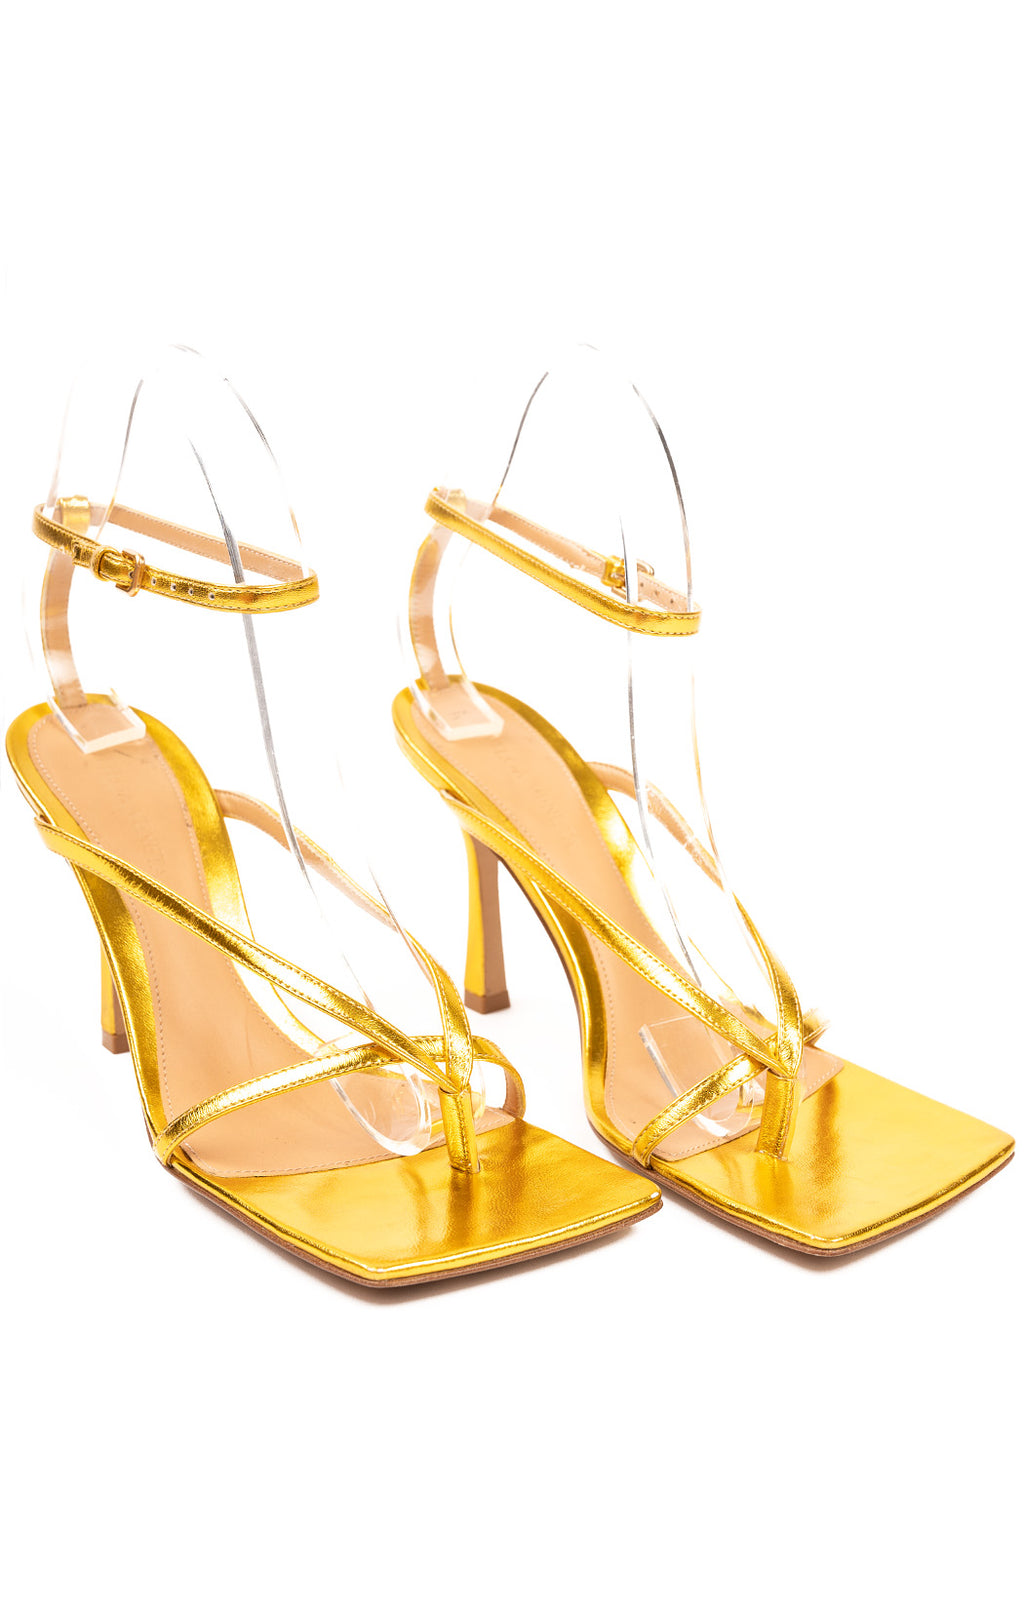 "Gold strap square toe sandals with 4"" heel"